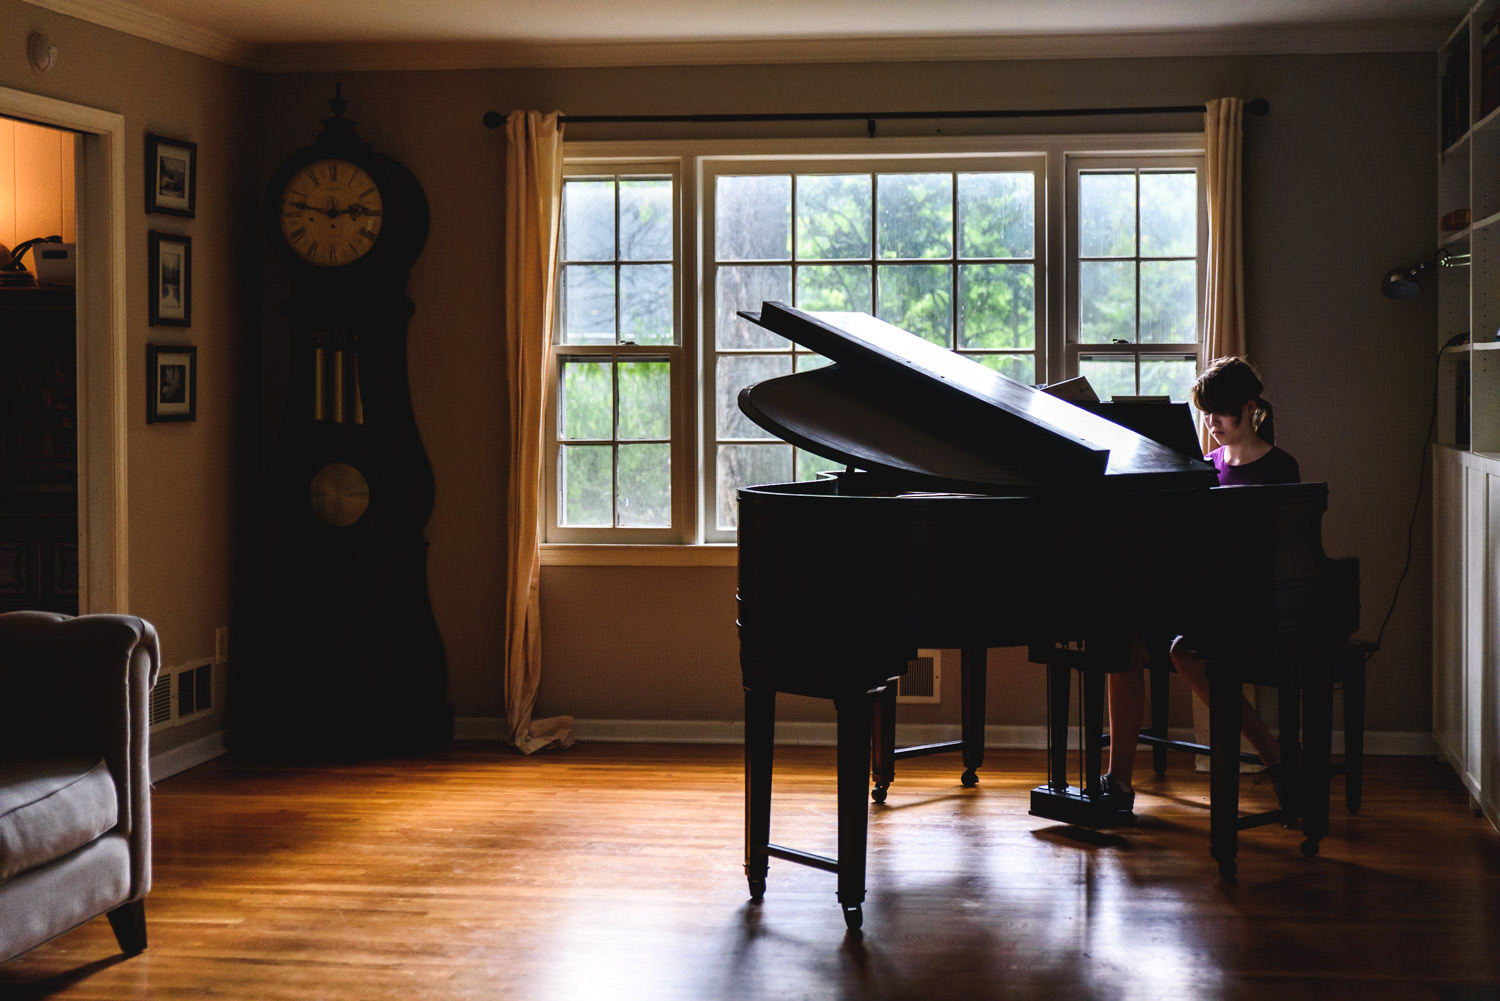 A teenager plays piano.